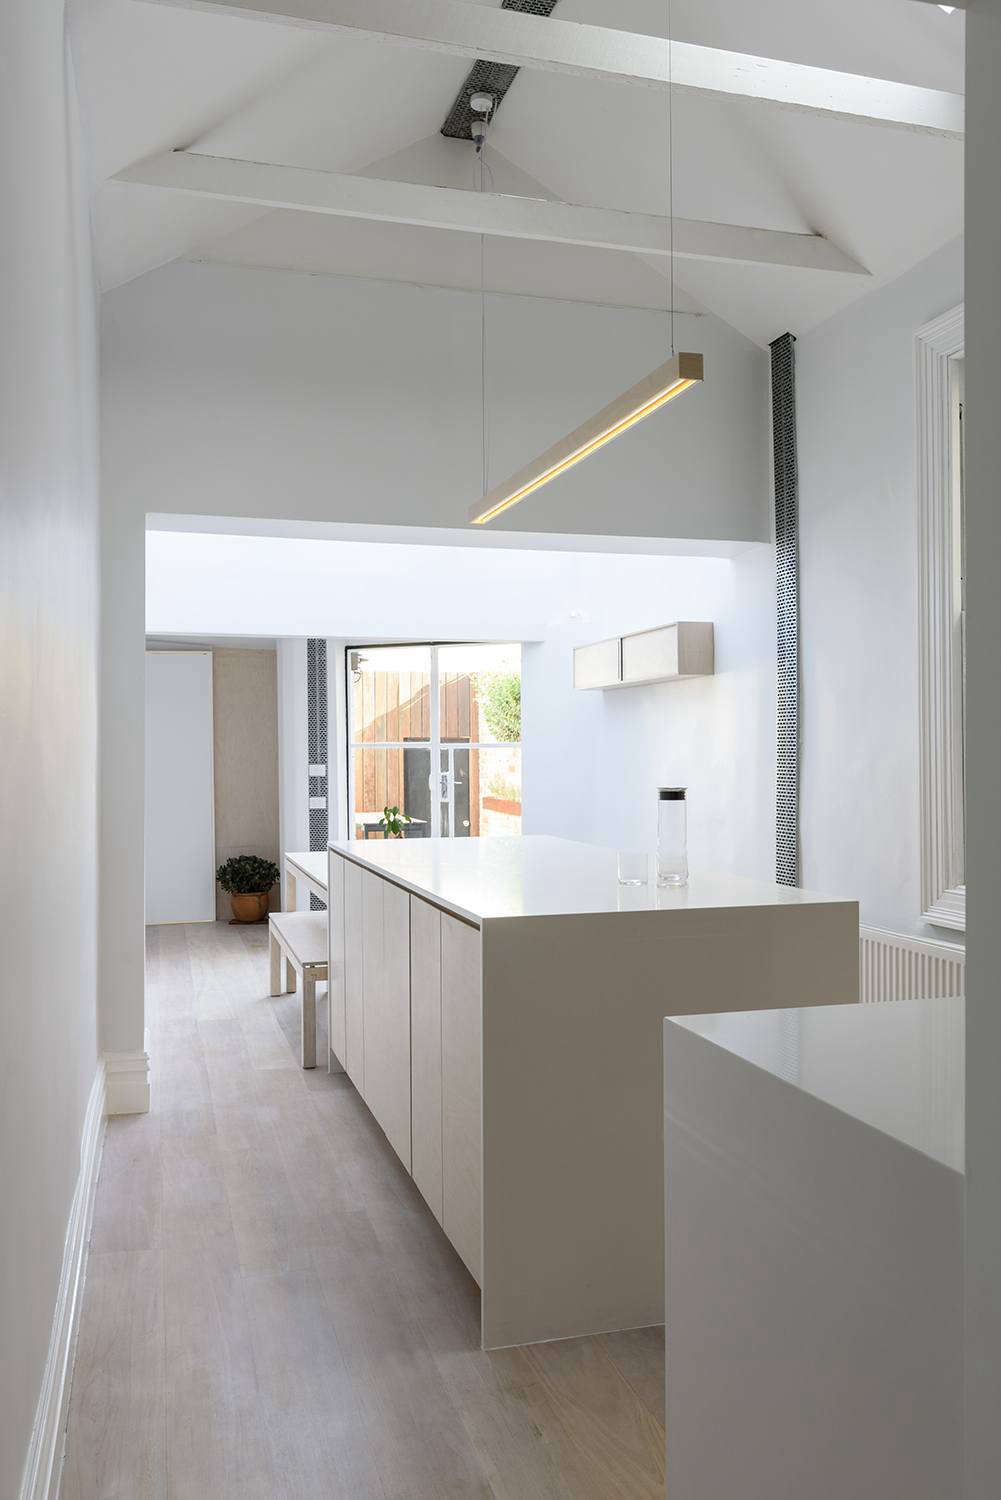 In the narrow, open-plan kitchen and dining, there's no room for transitions in decor. Henkell kept the look as consistent as possible by designing custom furnishings: a dining table and benches, a wall-mounted storage cabinet, plus a pendant light overhead, all linear in form and made of matching plywood.